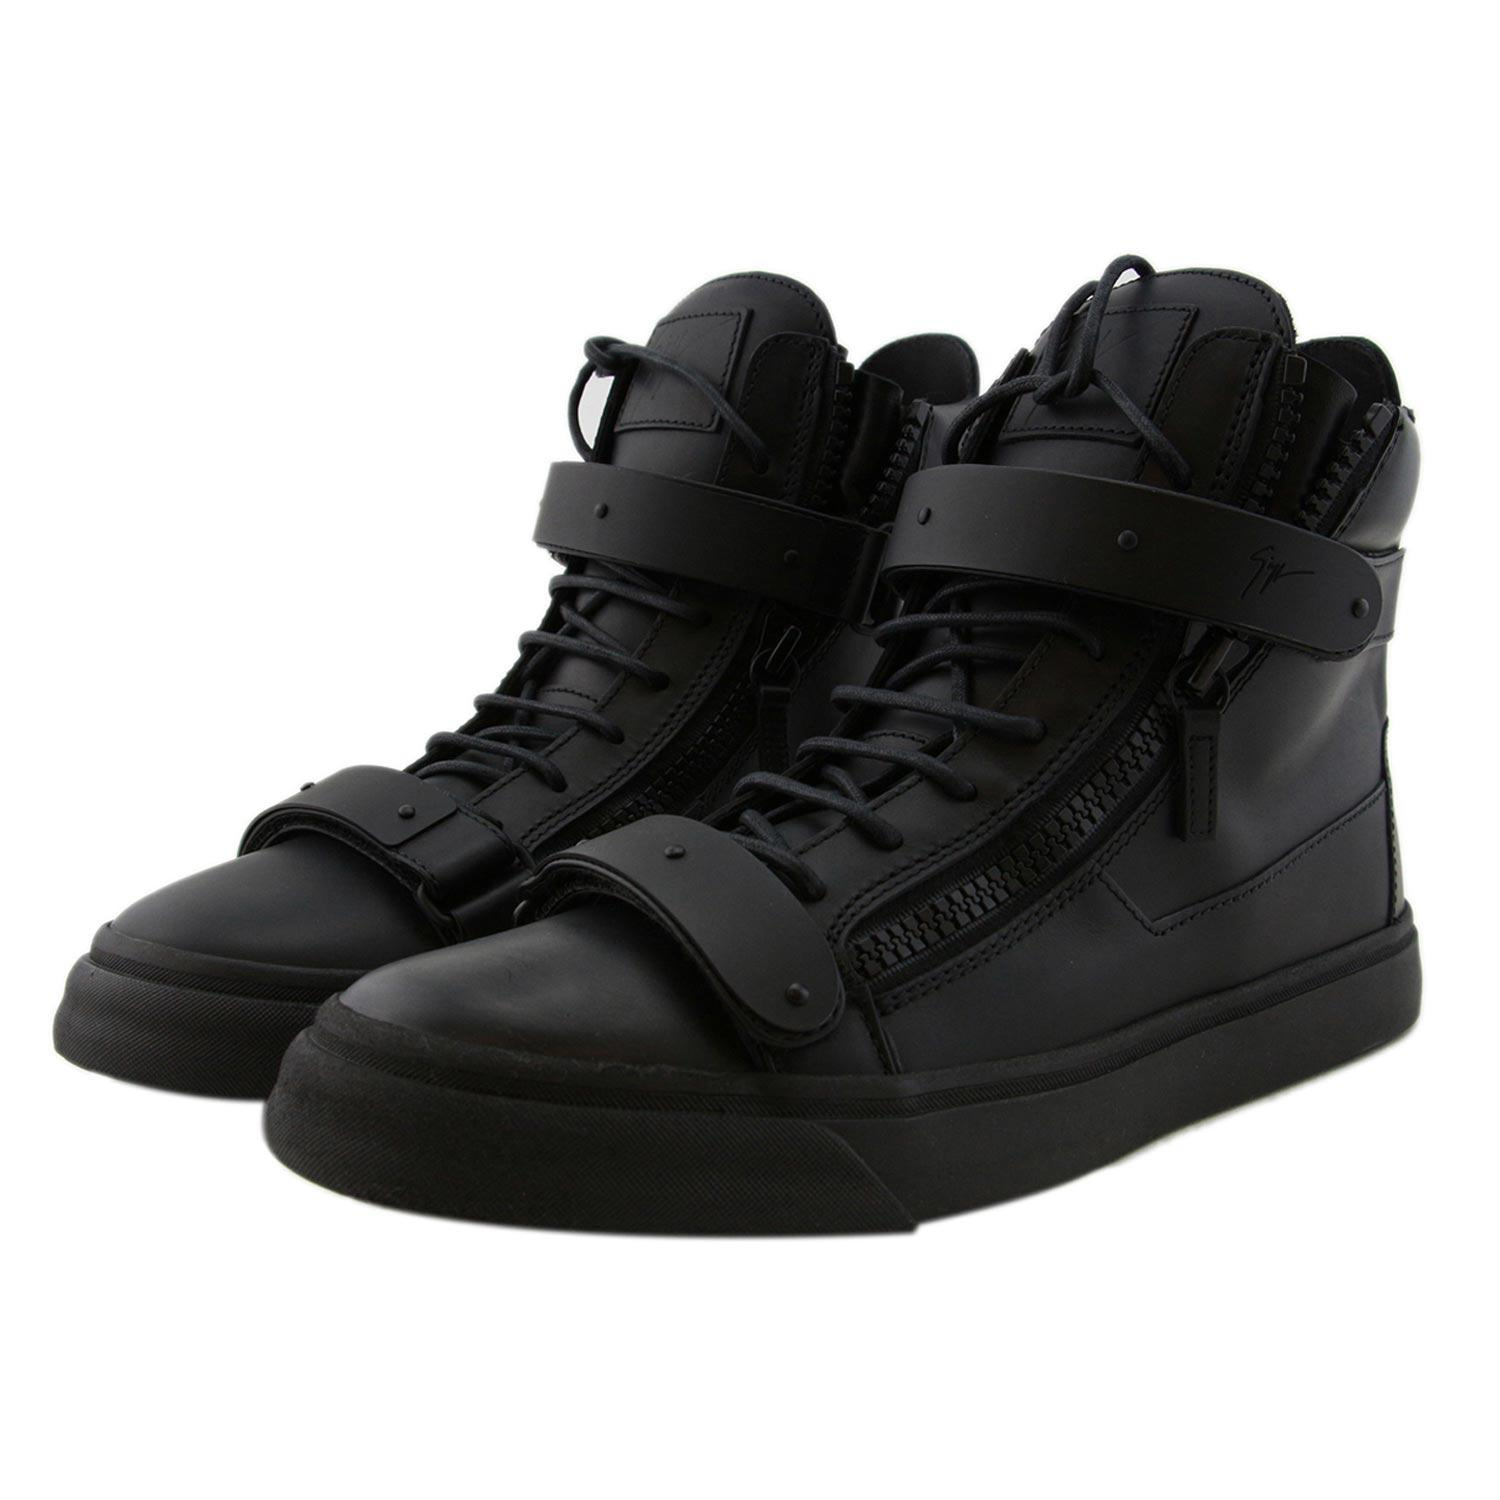 zuI1b8s Giuseppe Zanotti Womens High-Top Sneakers Black Leather Sales